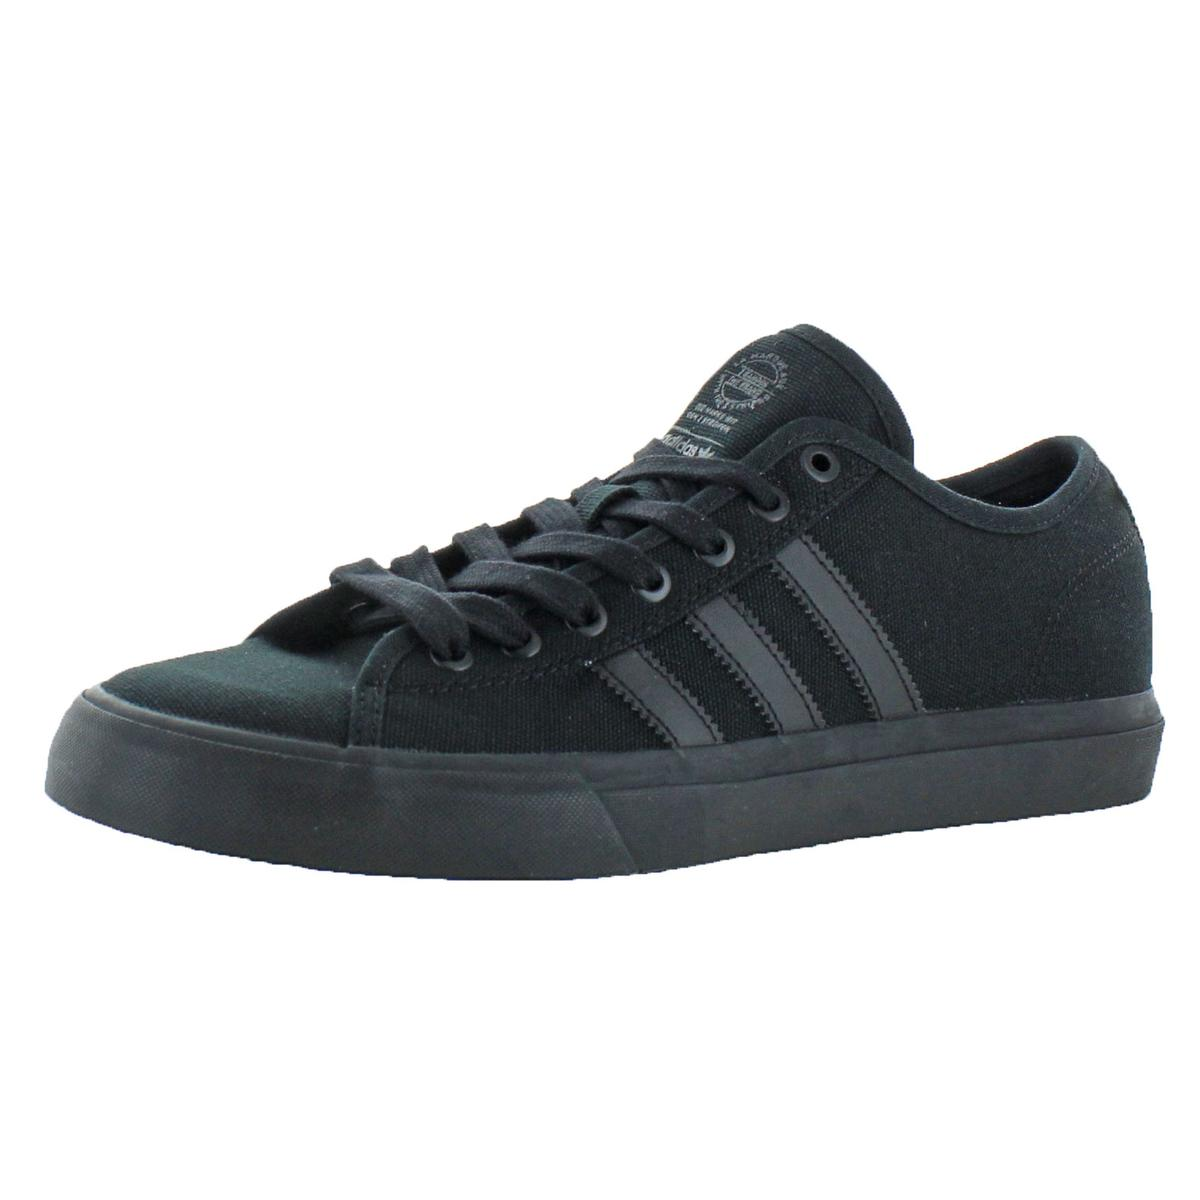 513ed4ae30e1 Details about adidas Originals Mens Matchcourt RX Low Top Casual Shoes  Sneakers BHFO 7670